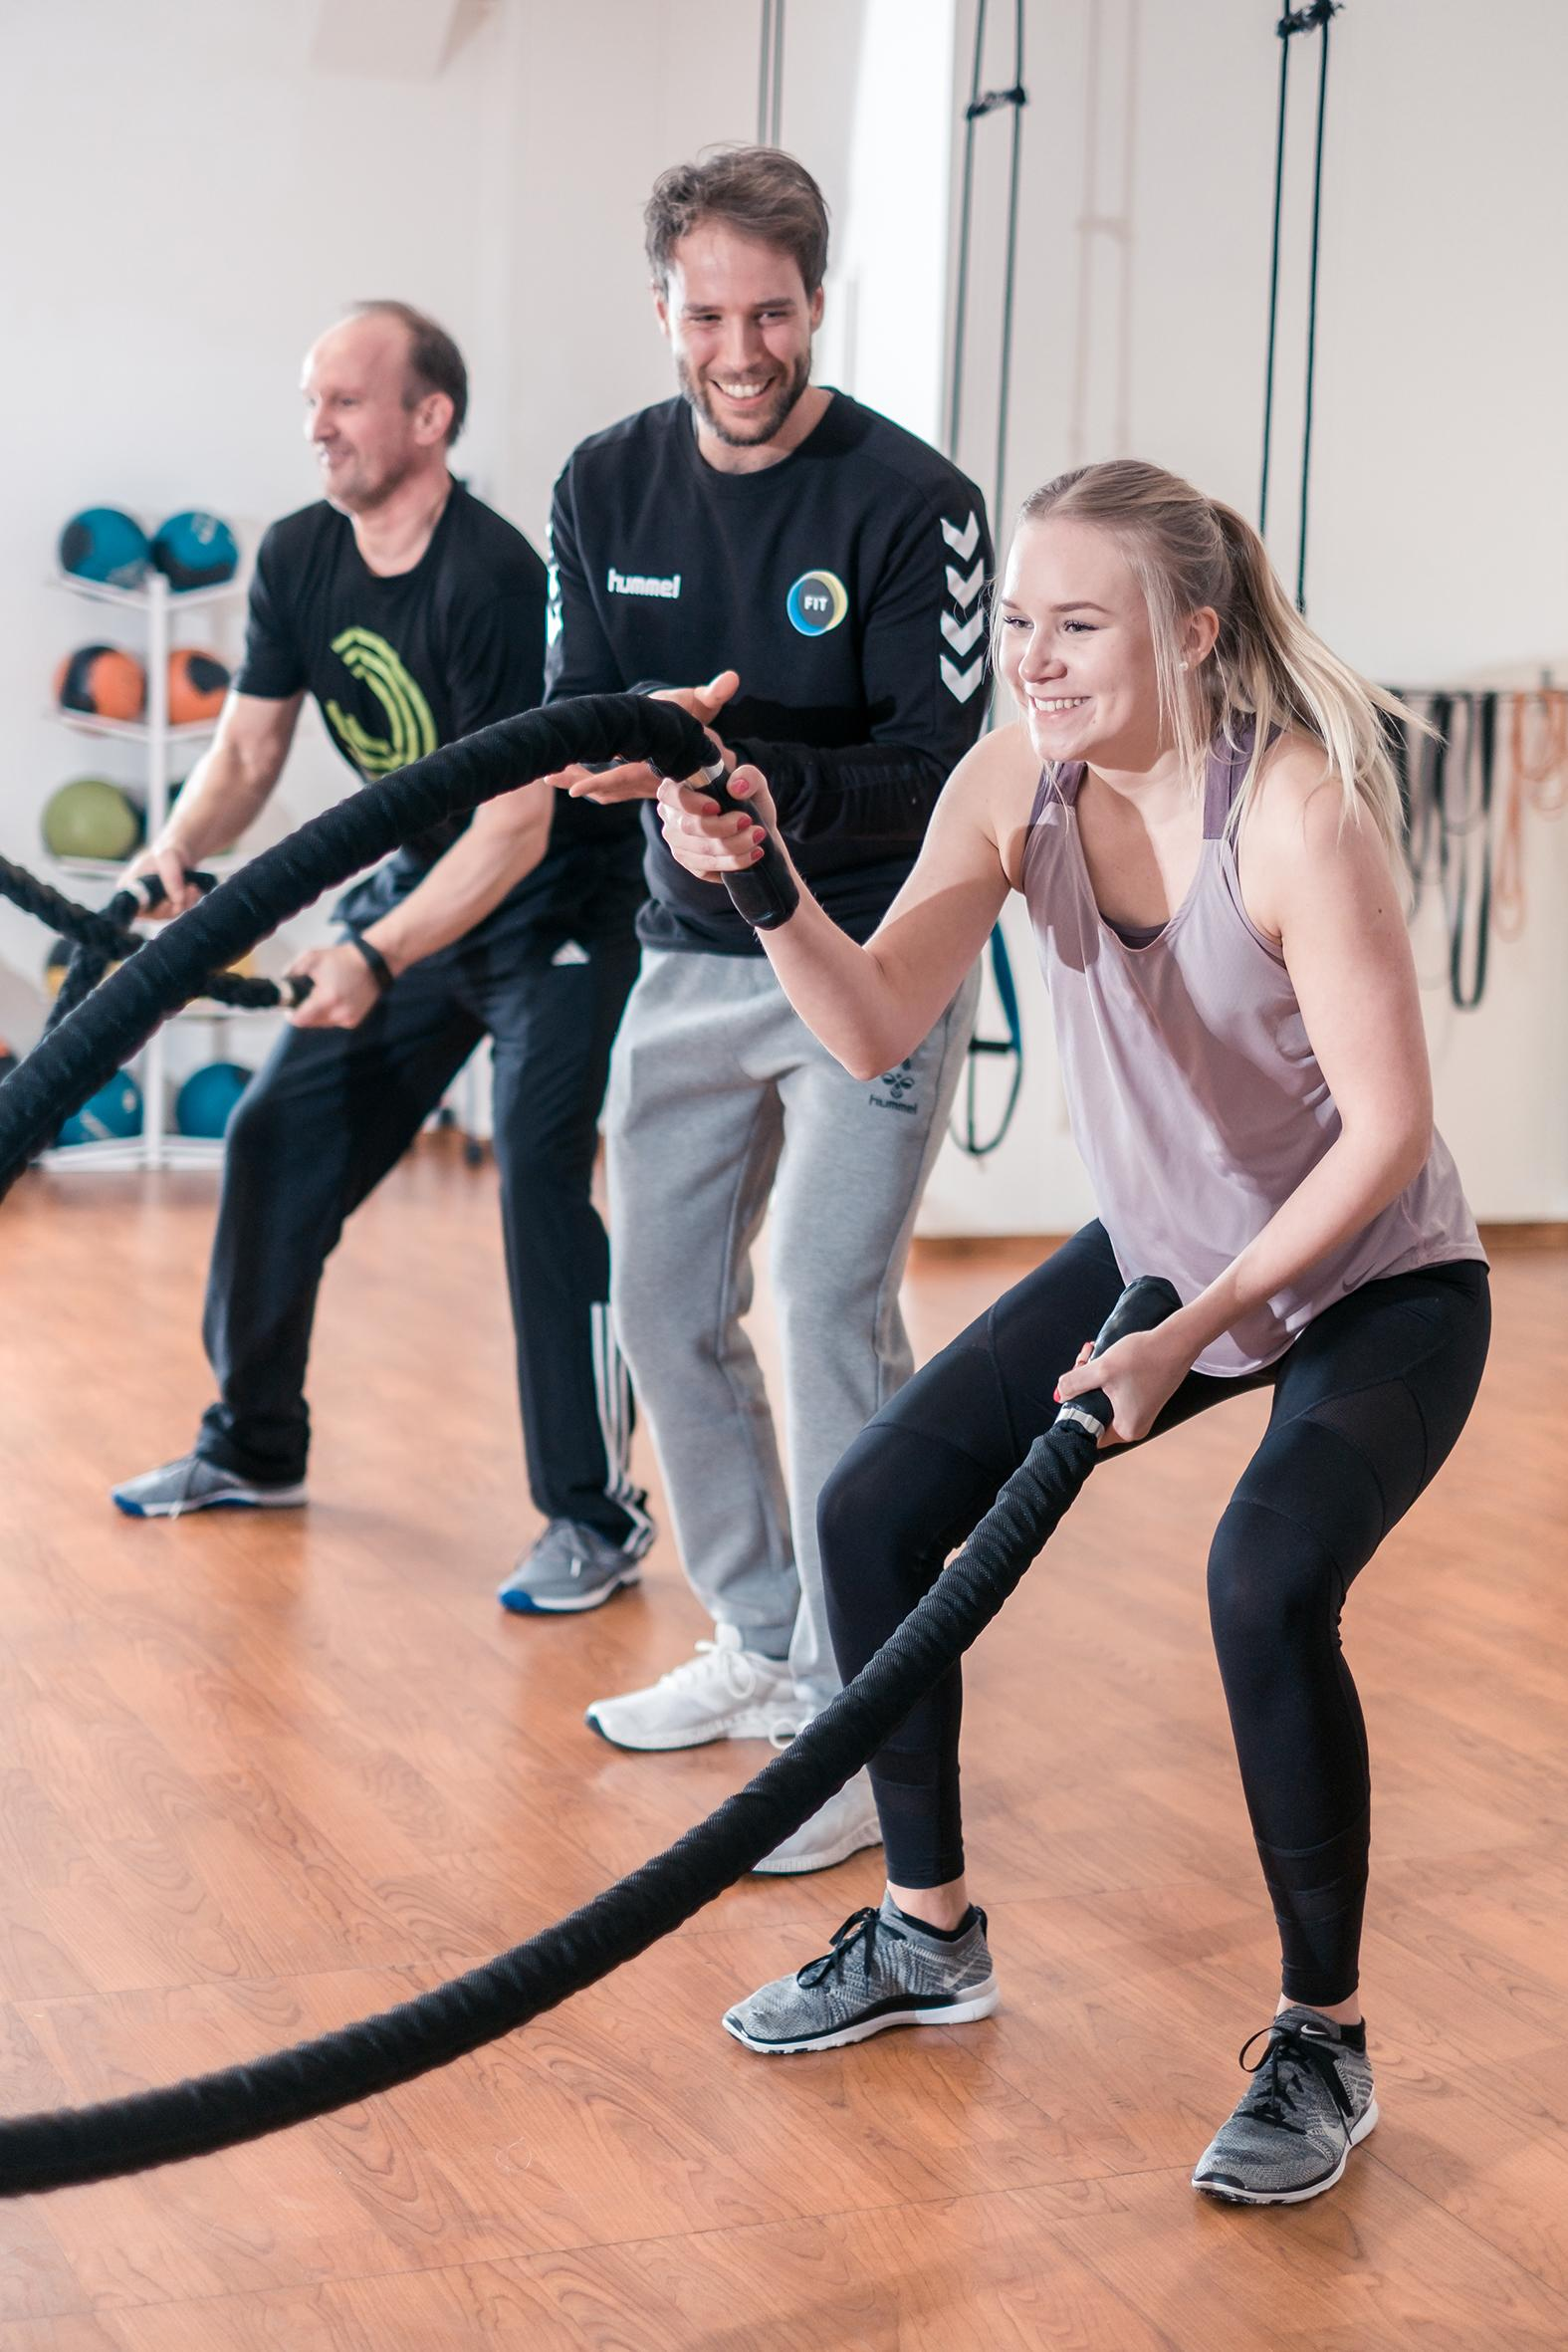 Innovative Trainingskonzepte bei FIT